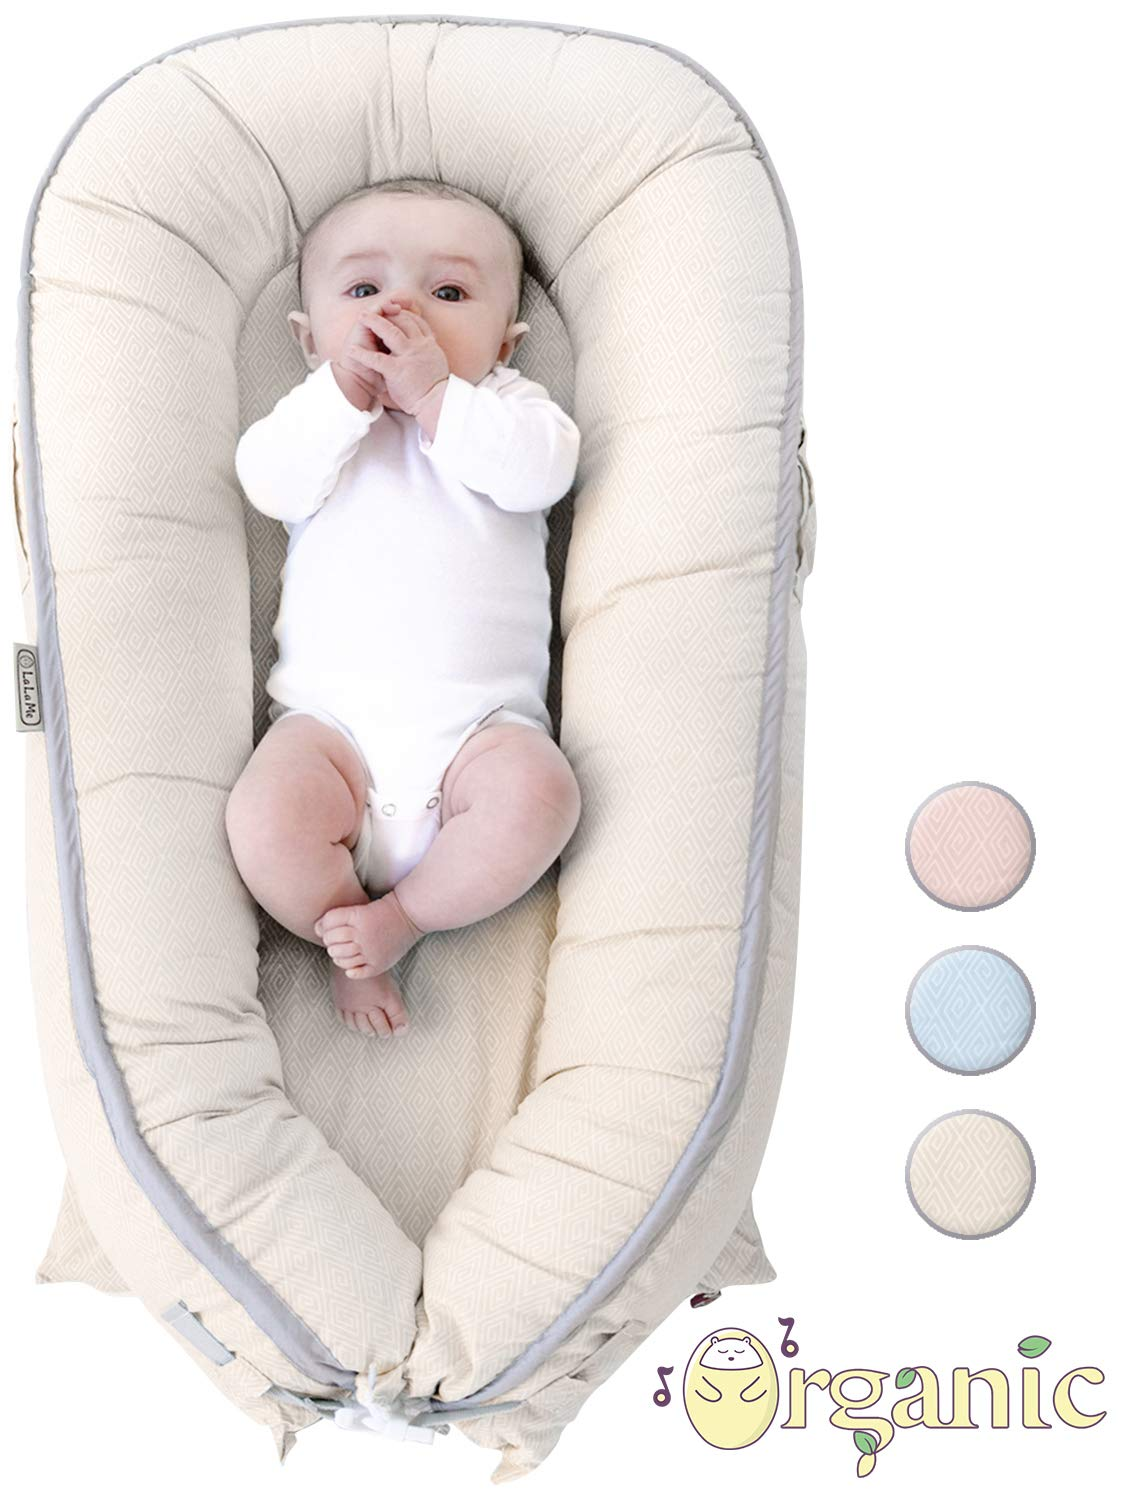 Organic Newborn Lounger | Baby Nest | Portable Snuggle Bed for Infants & Toddlers 0-12 Month | Blue, Pink, Beige Colors for Girls and Boys | Use as Bassinet, Play Pillow, Mobile Crib (BEIGE)